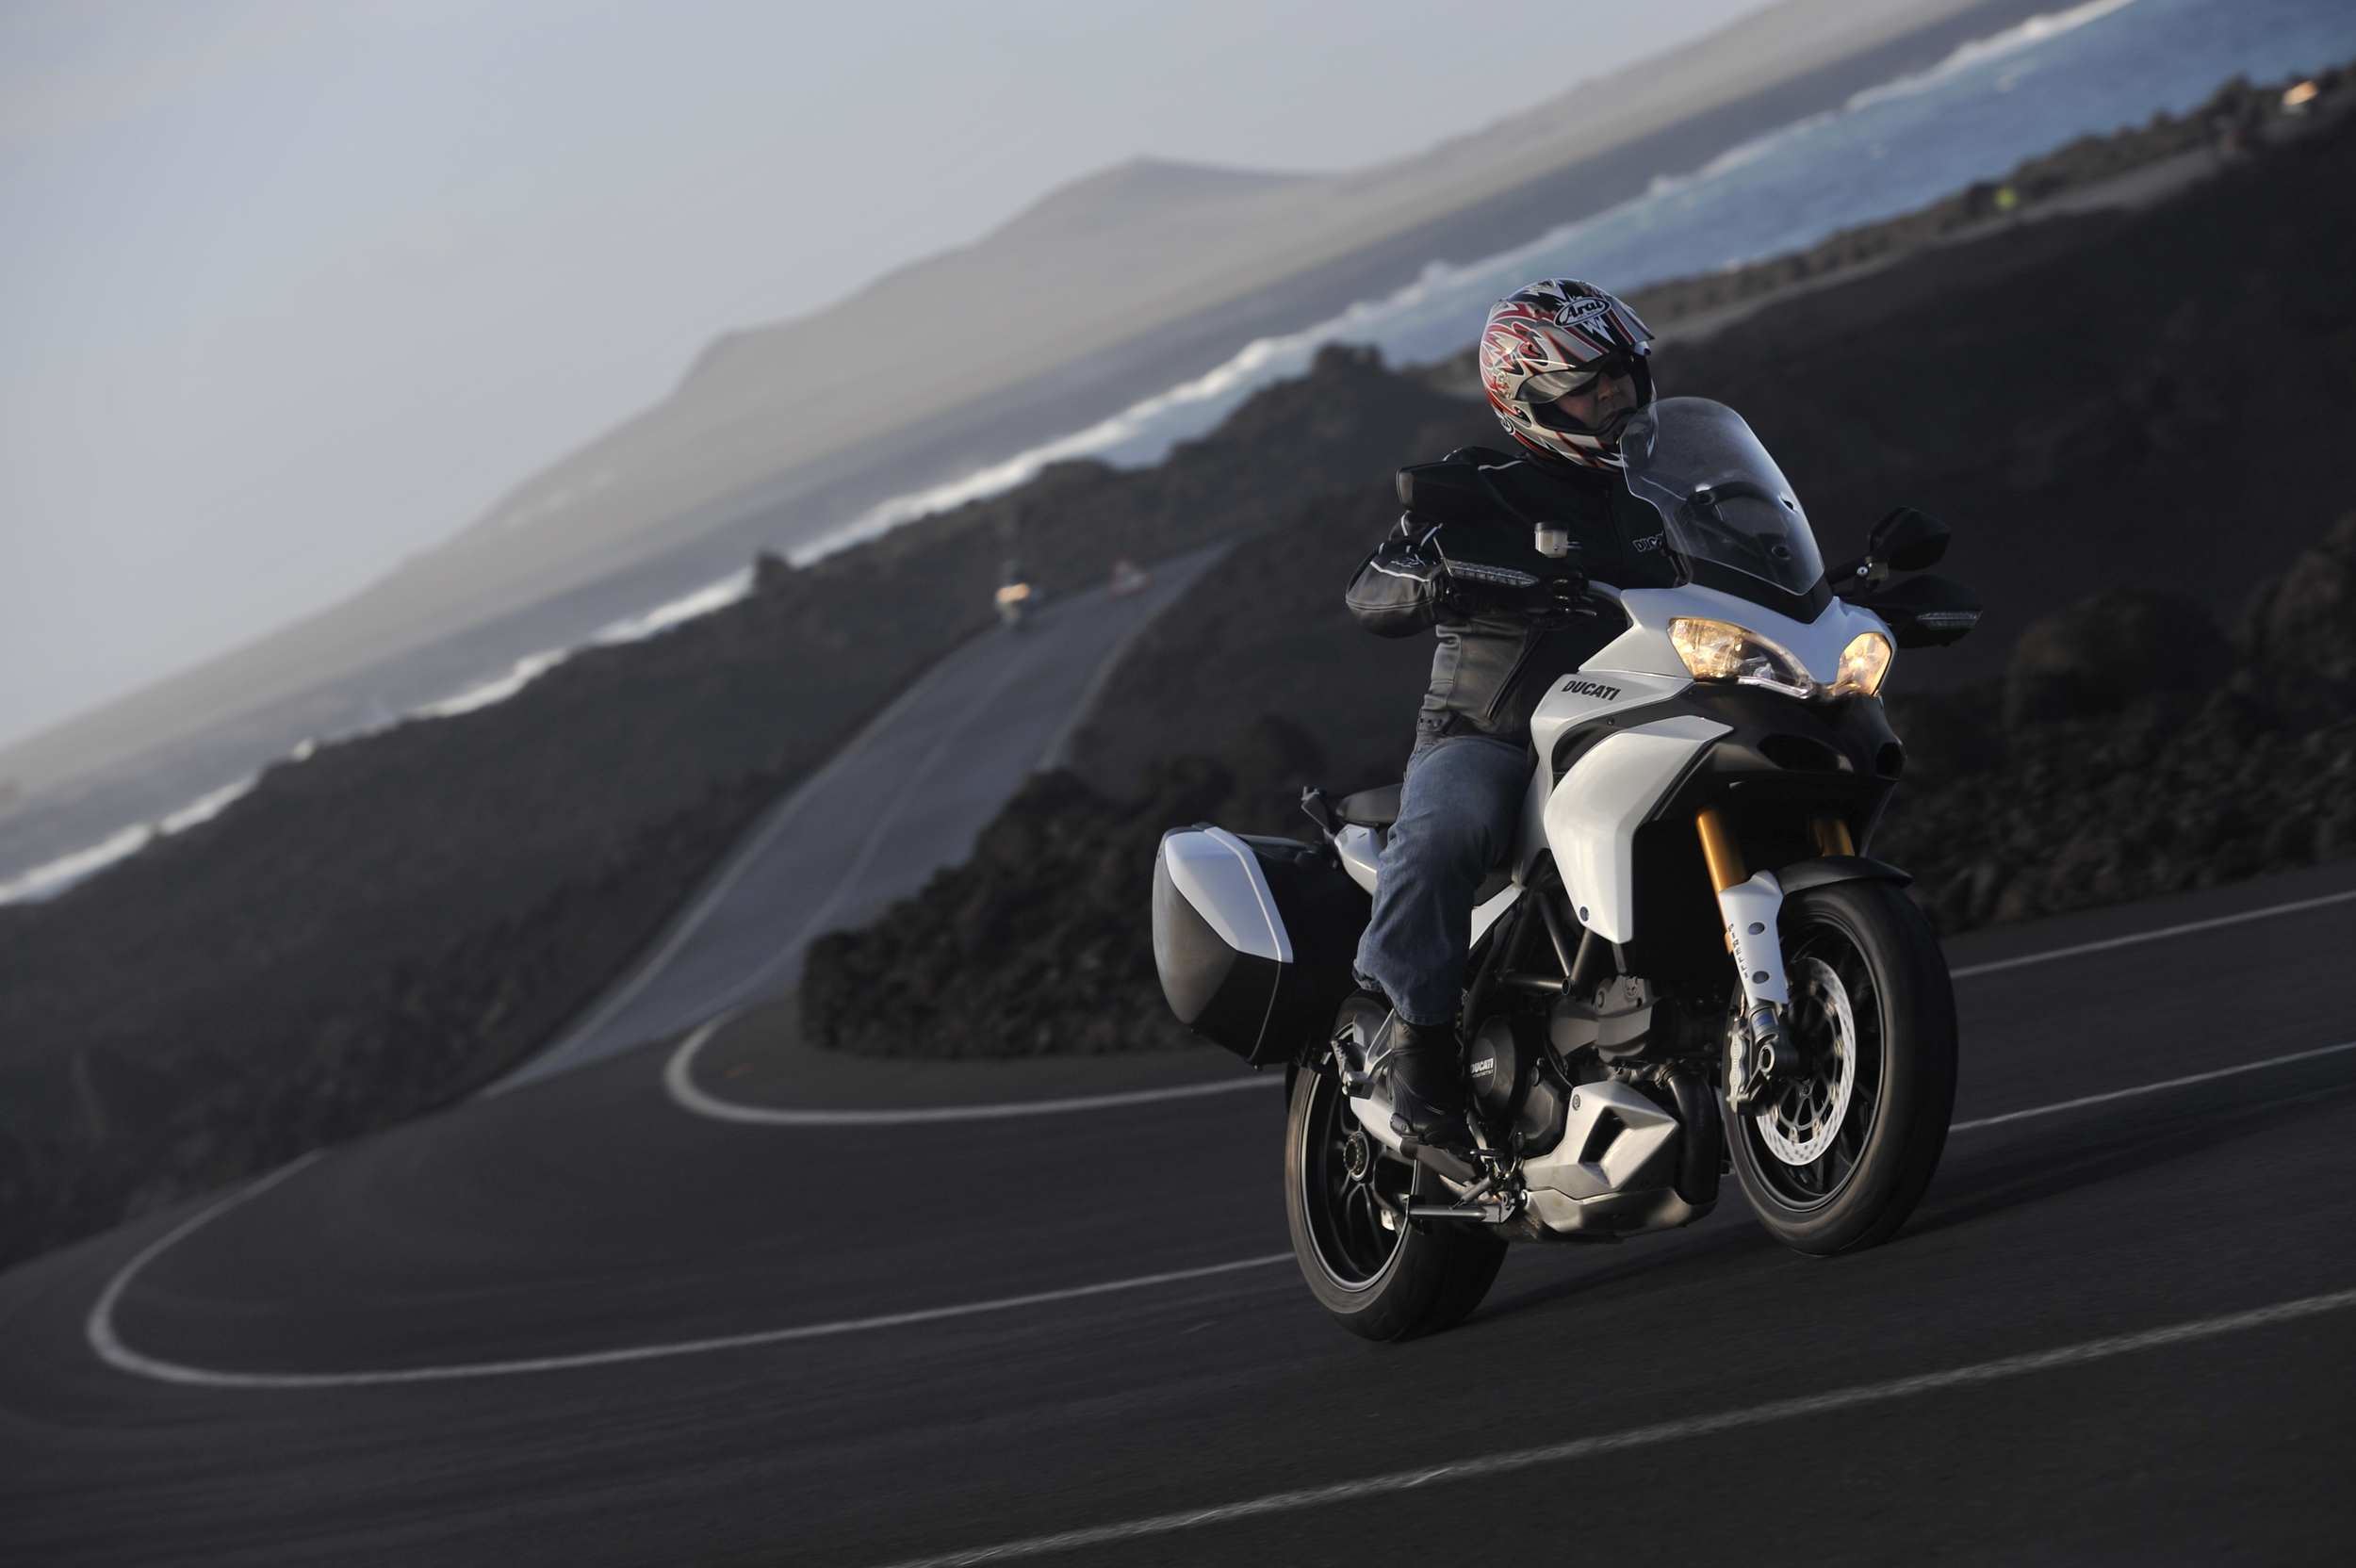 Testing the Ducati Multistrada in Lanzarote, 2010. Photo courtesy of Ducati and SuperbikePlanet.